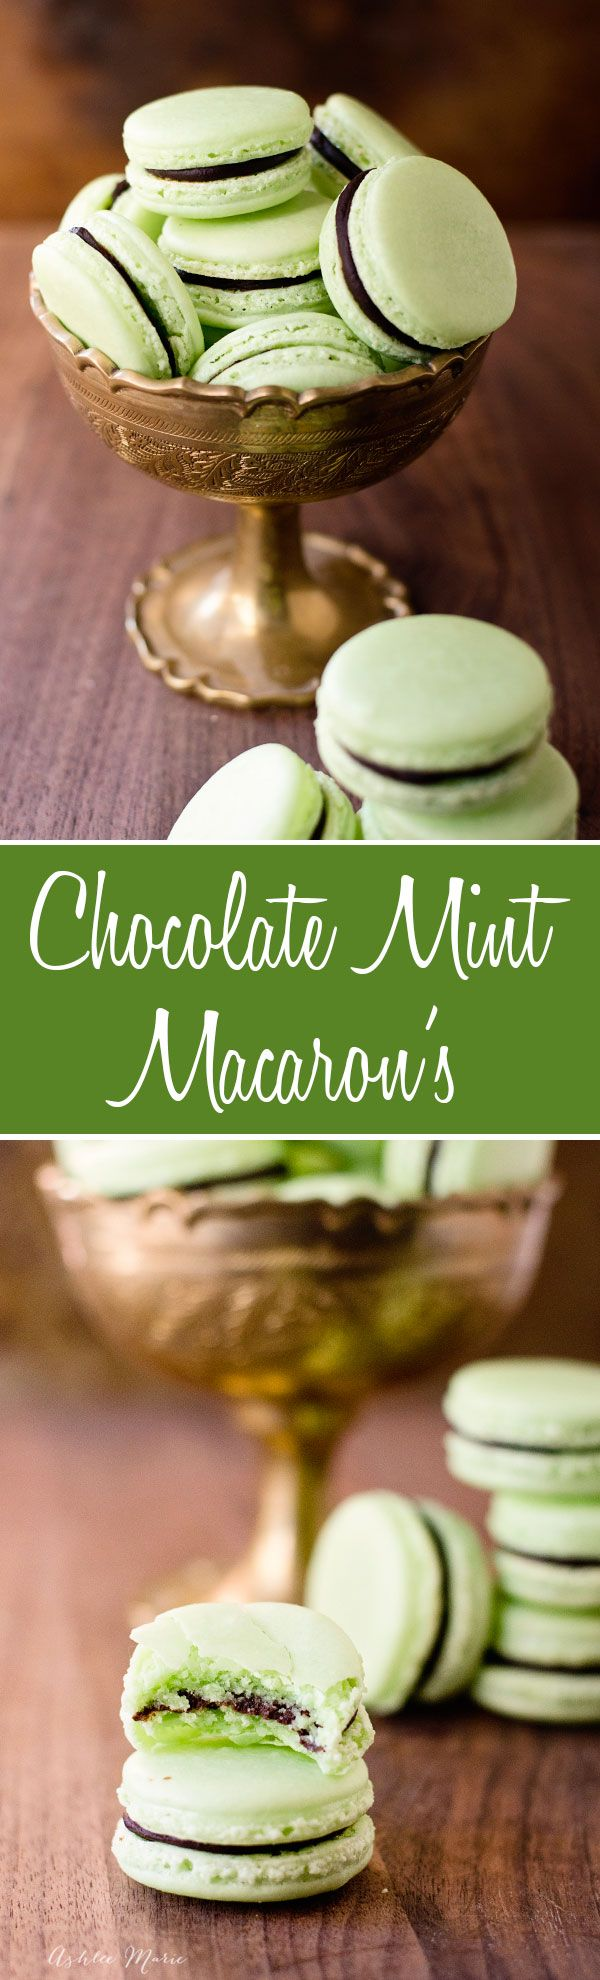 a recipe and tutorial for making your own peppermint and ganache macarons. This was my first attempt but it wont be the last.